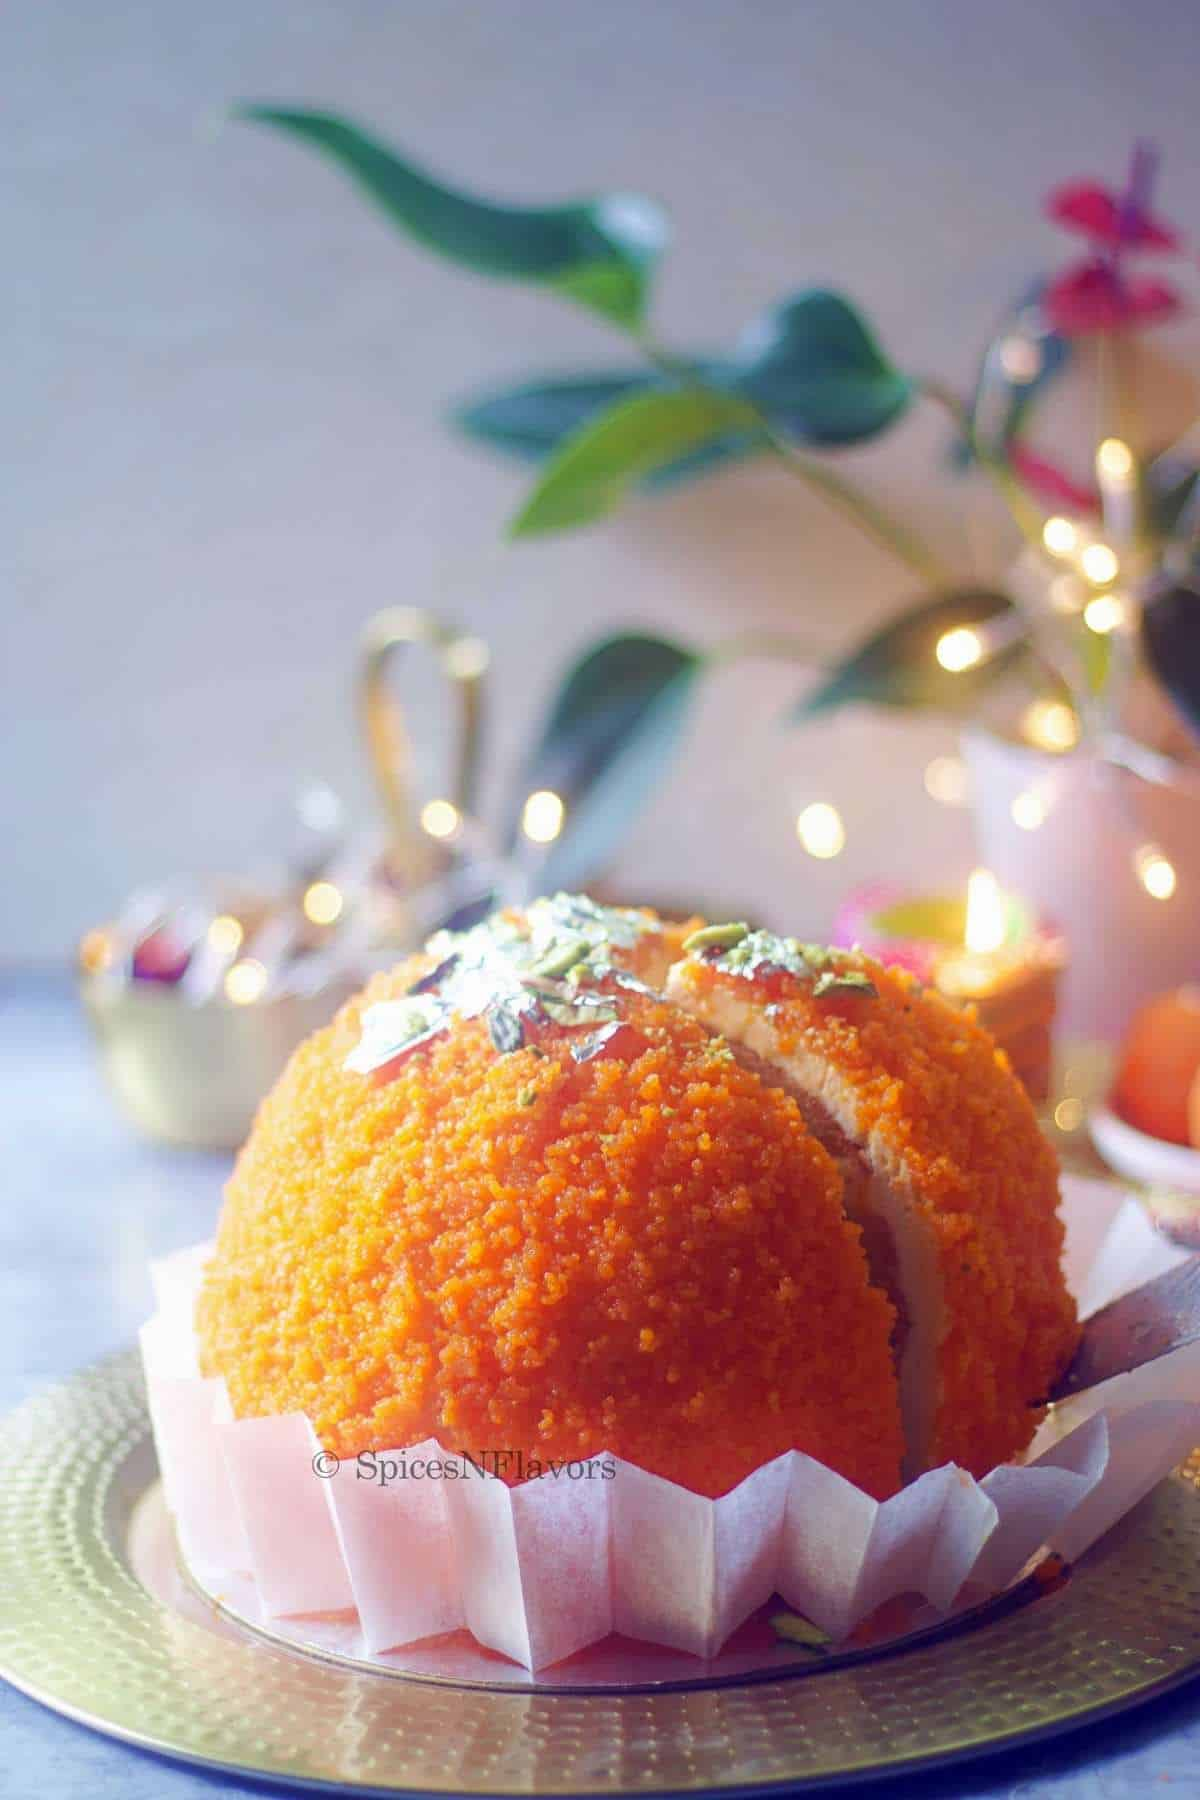 ladoo cake with a part of it sliced